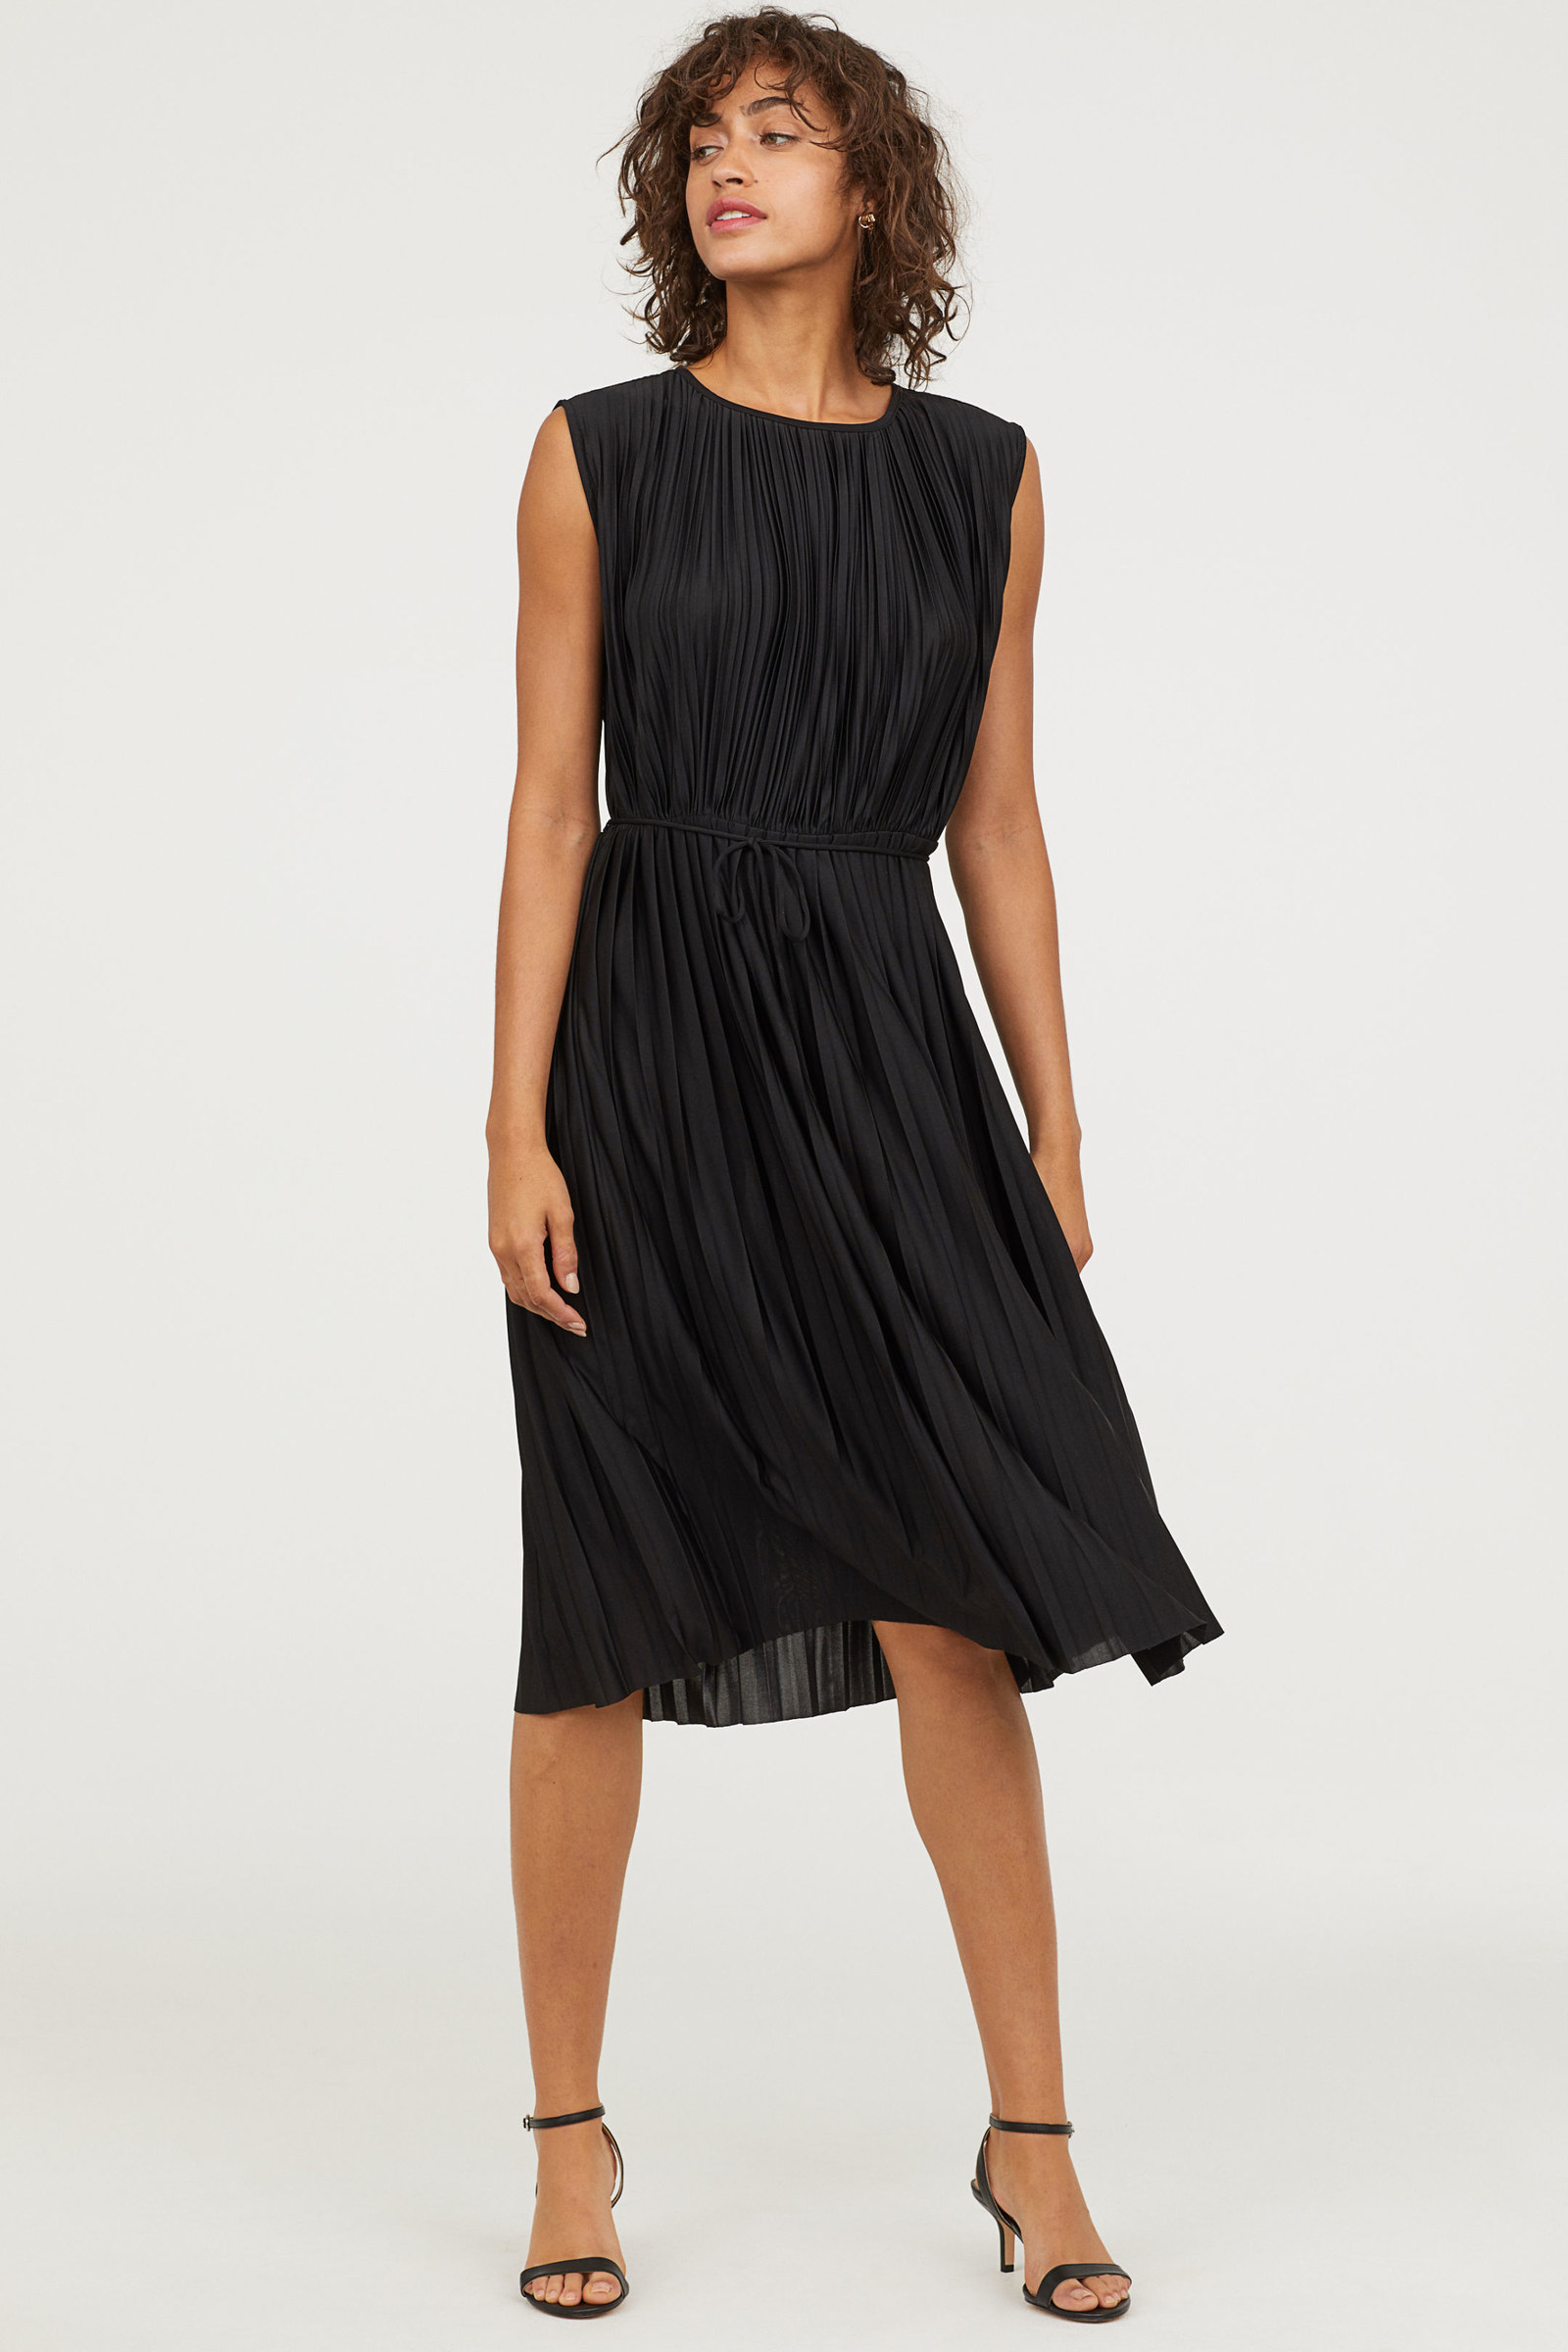 H&m Online In Usa 27 Gorgeous Dresses That Deserve To Be Danced In